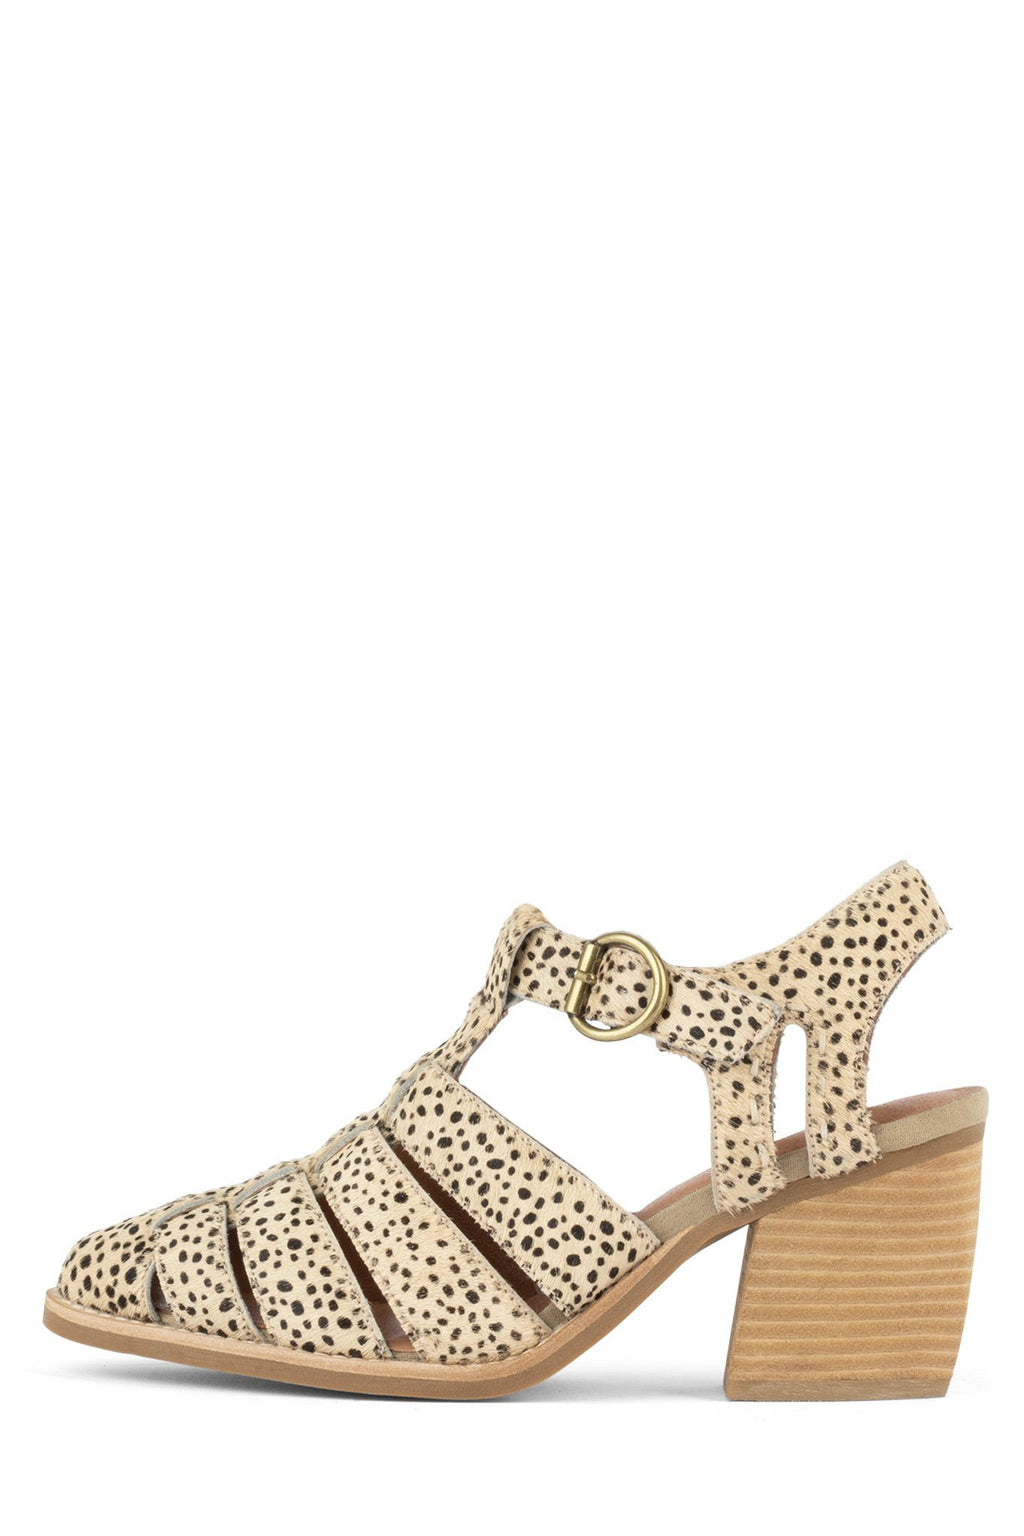 ANGORA-F Bootie Jeffrey Campbell Brown Beige Jaguar 6